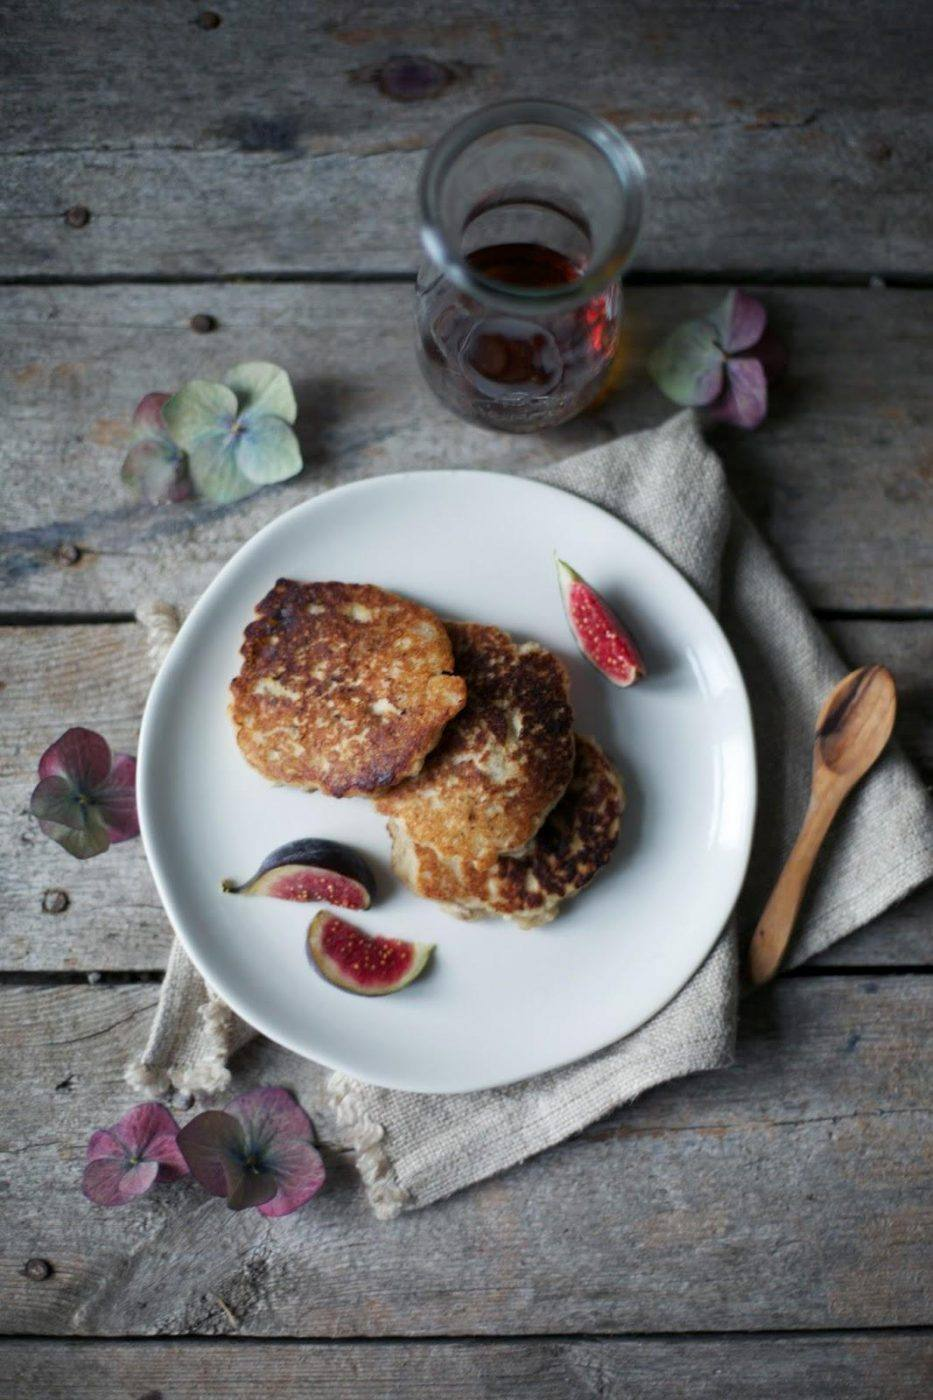 Image for Gluten-free and vegan Banana Pancakes